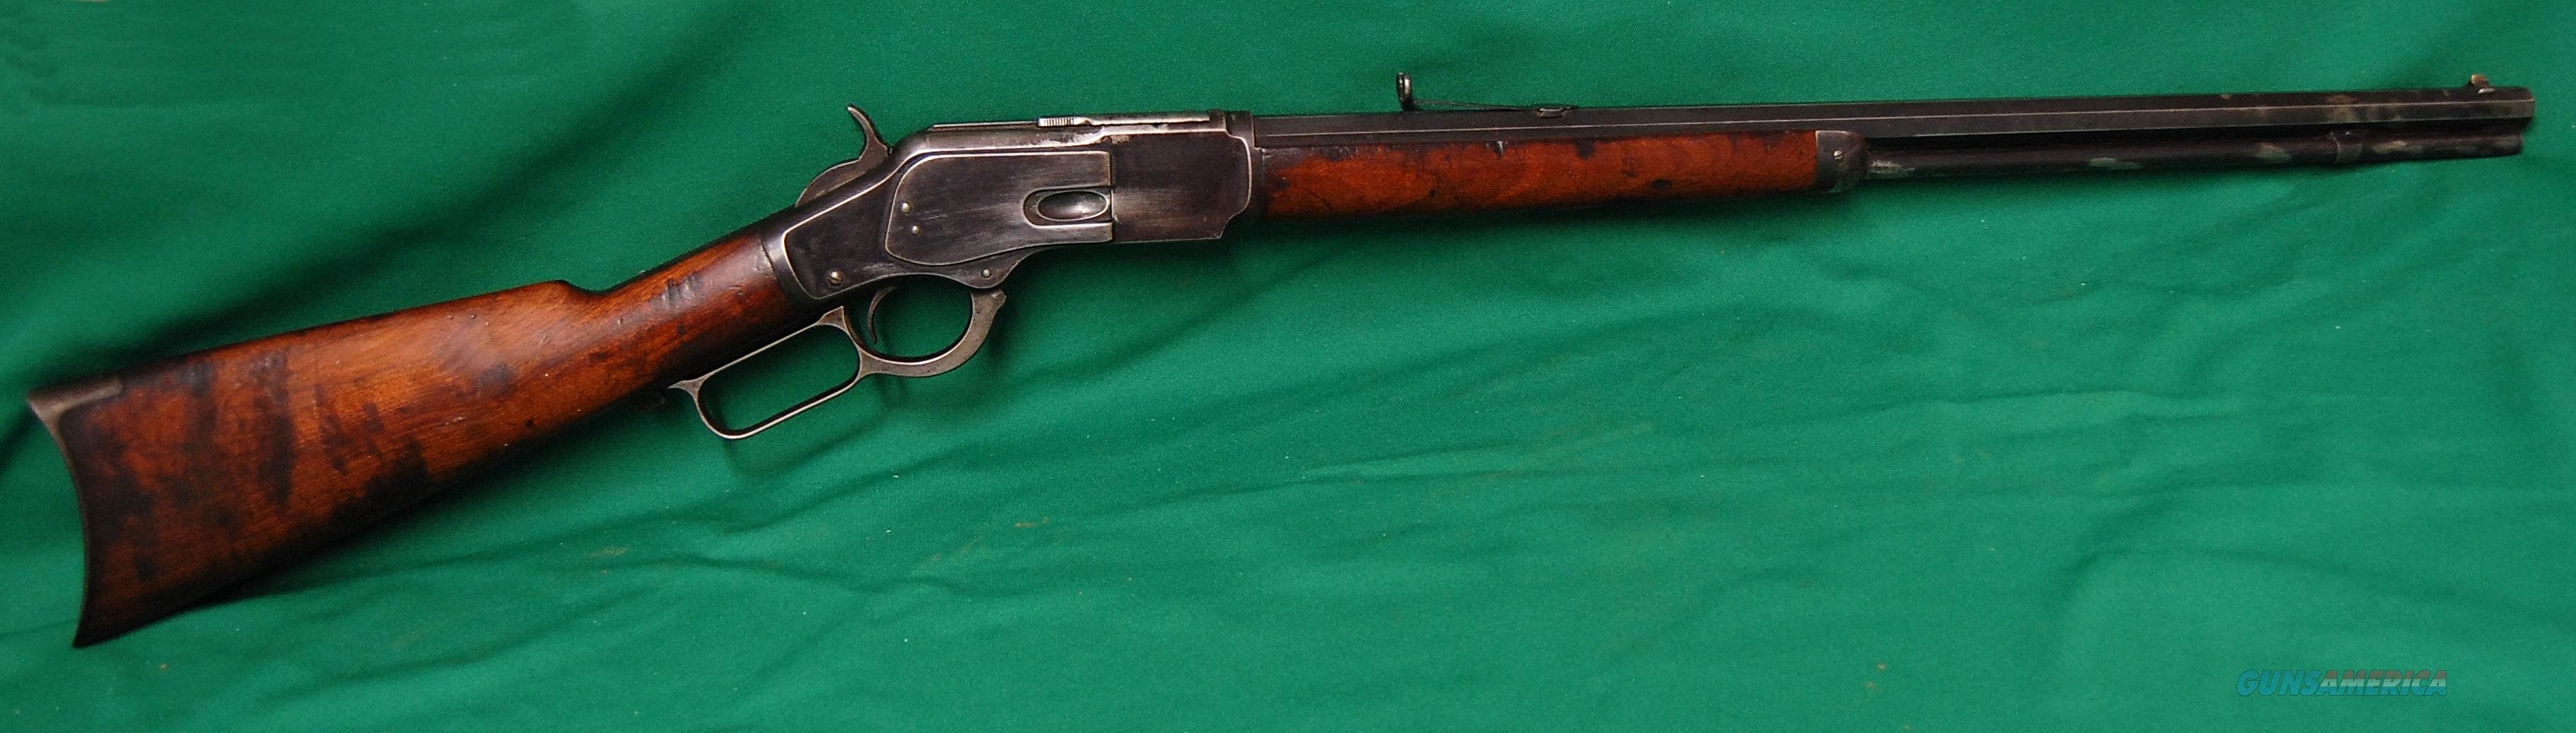 Winchester 1873 .32 WCF (32-20) Original in good condition  Guns > Rifles > Winchester Rifles - Pre-1899 Lever